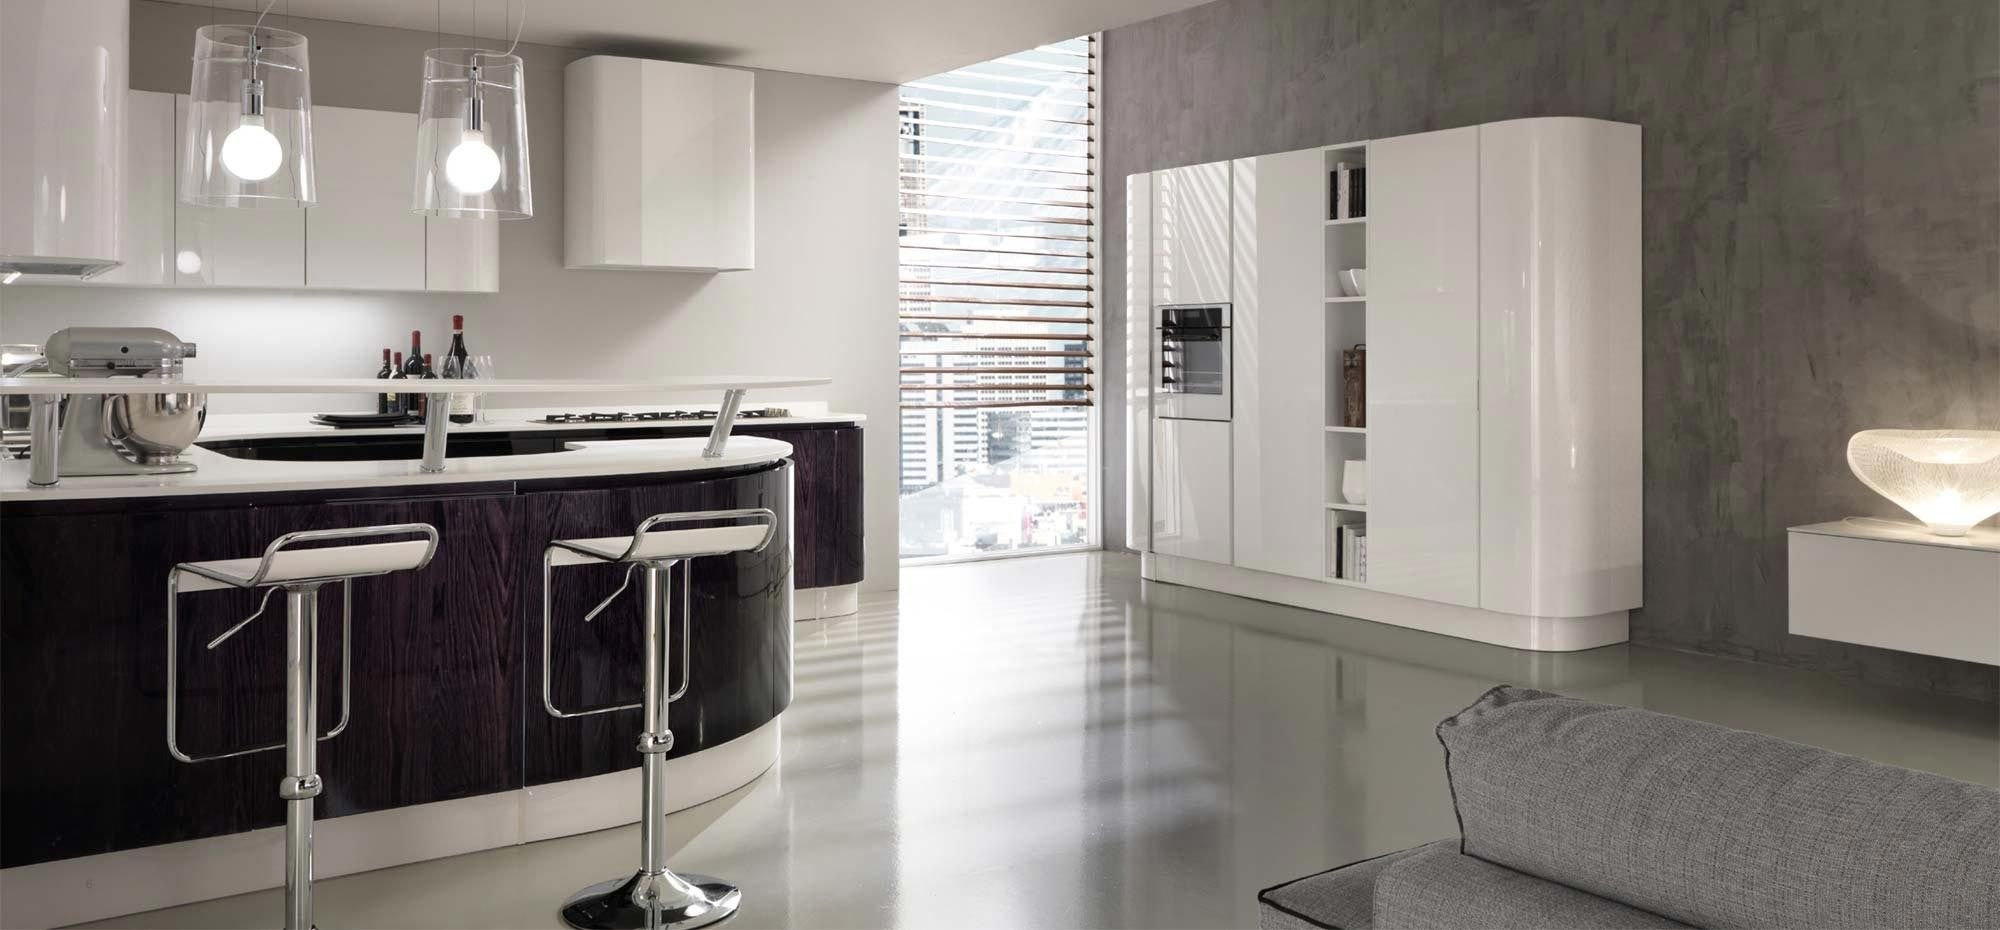 B50 • Cucine moderne by Berloni | Design | Pinterest | Kitchens and Room